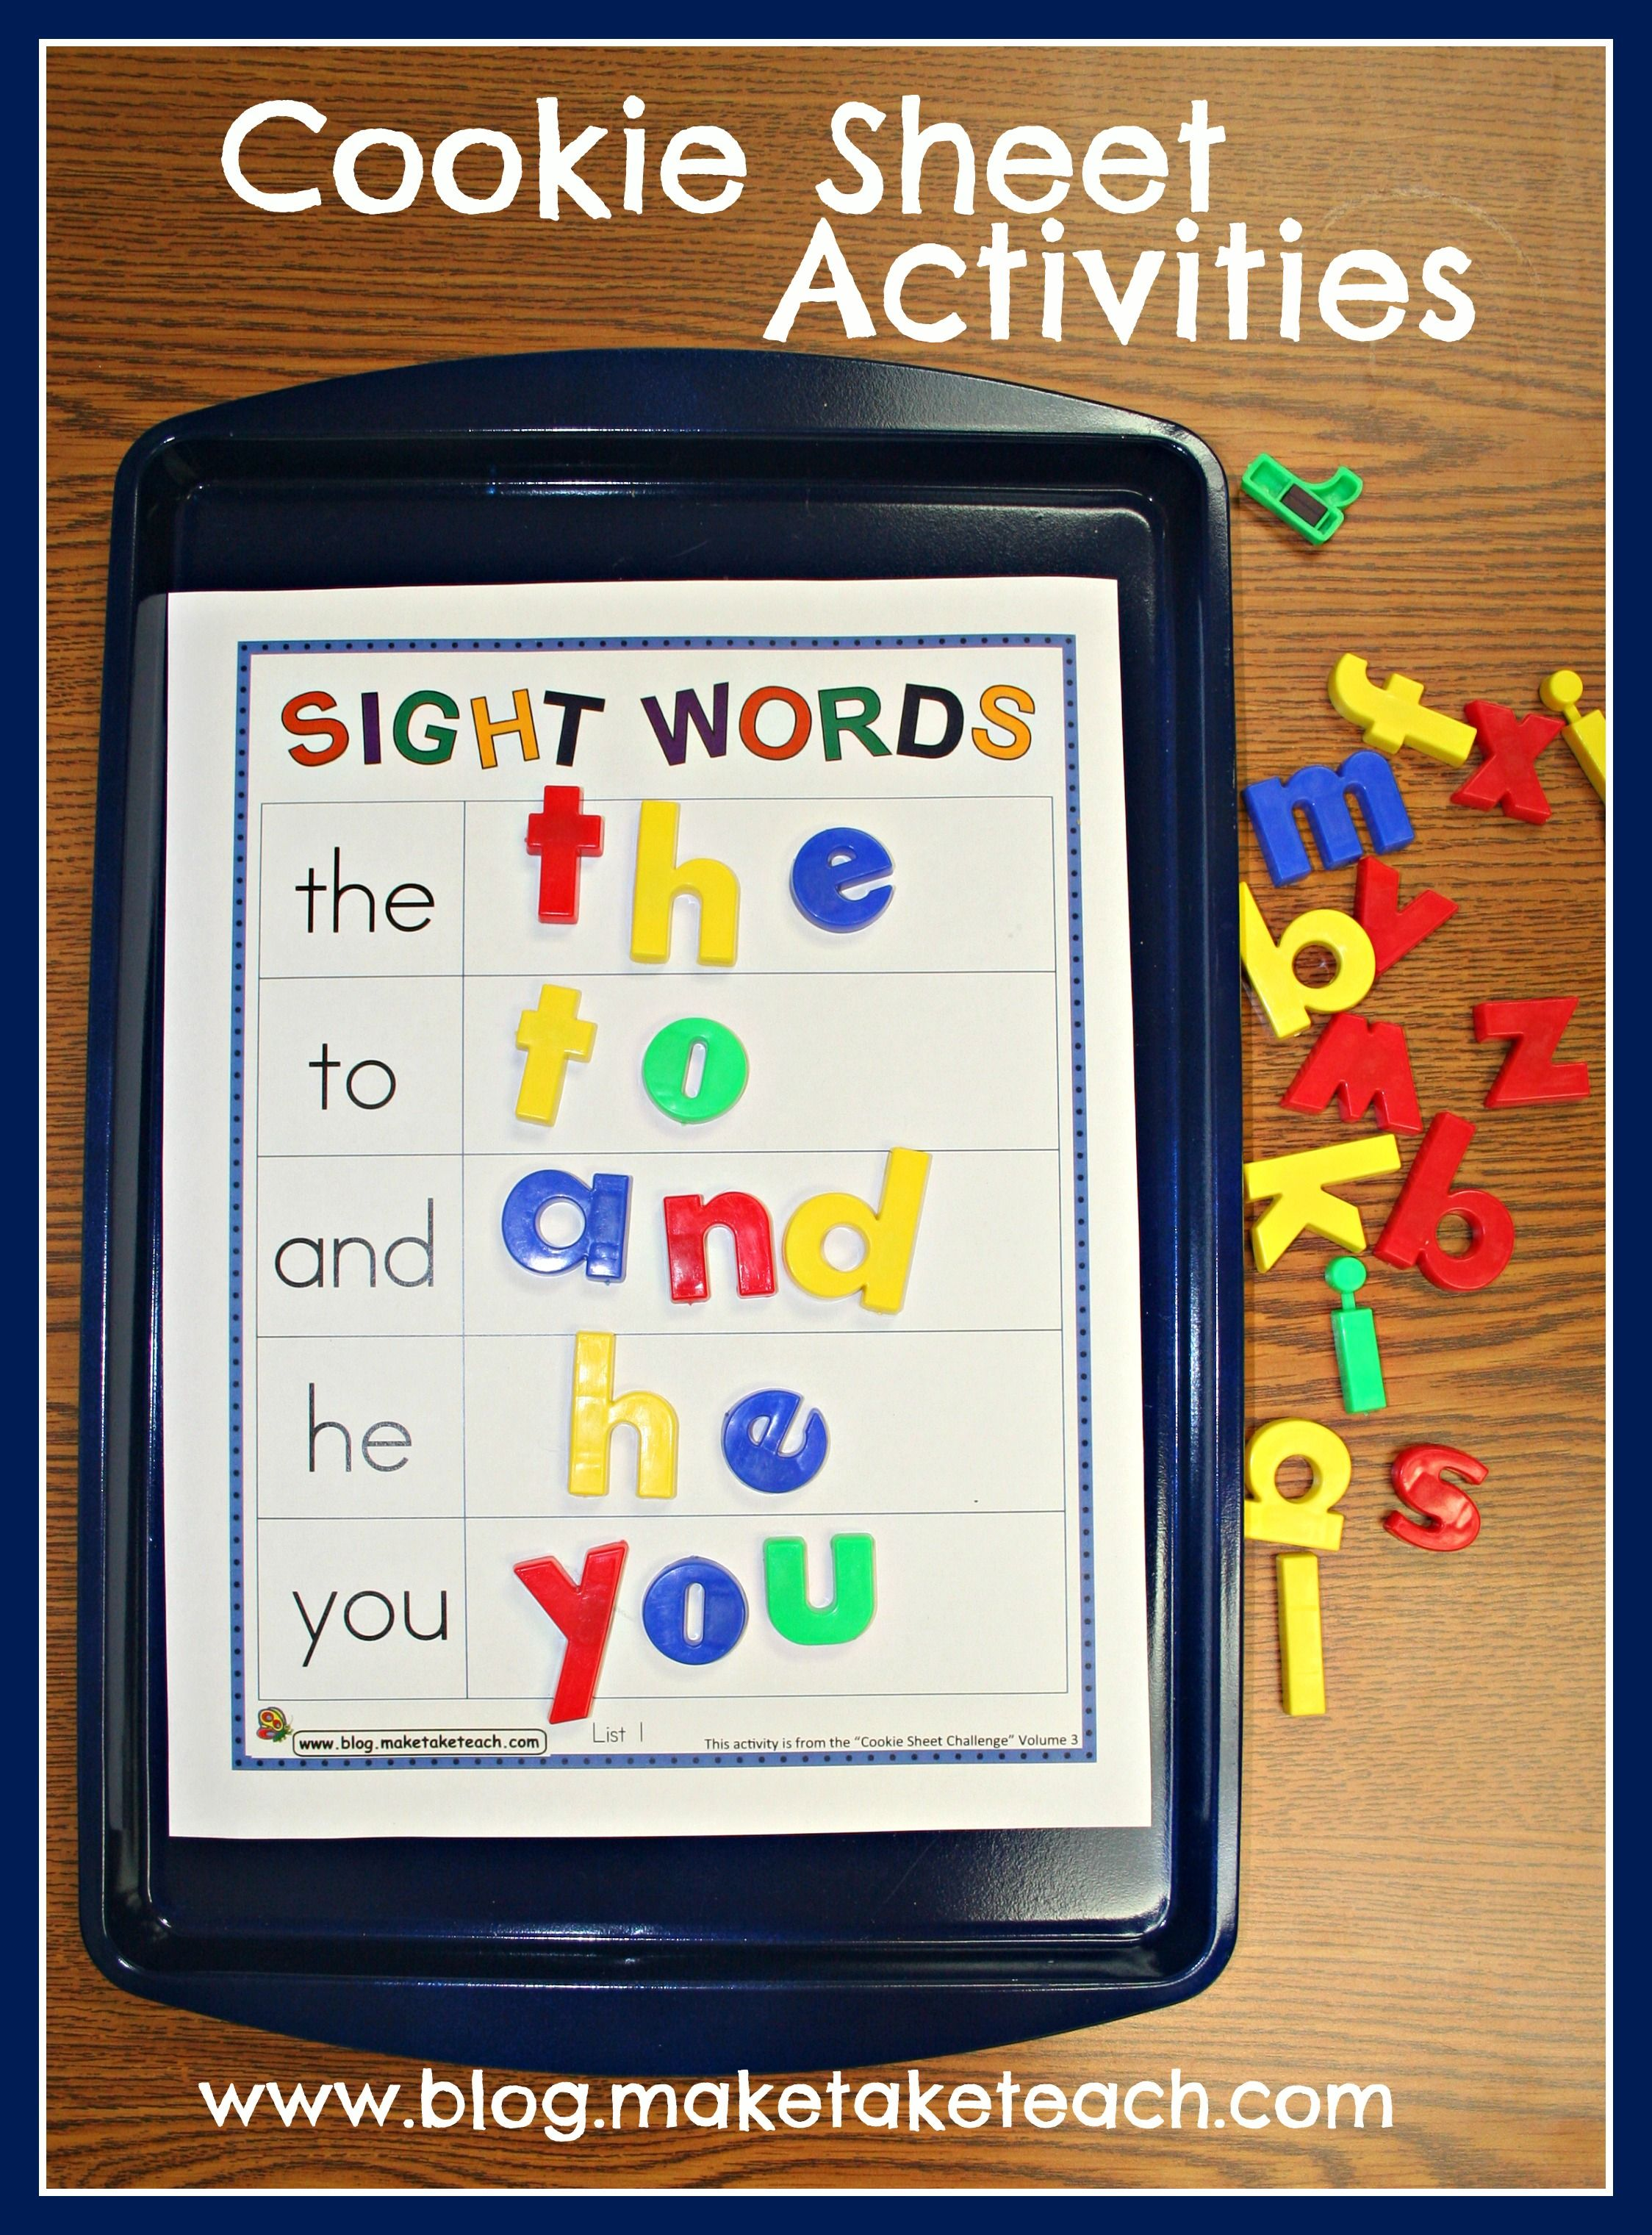 Worksheet Activities For Learning Sight Words toddler activities for the bored learning sight words cookie sheet clear sleeve with magnets on magnet board to switch